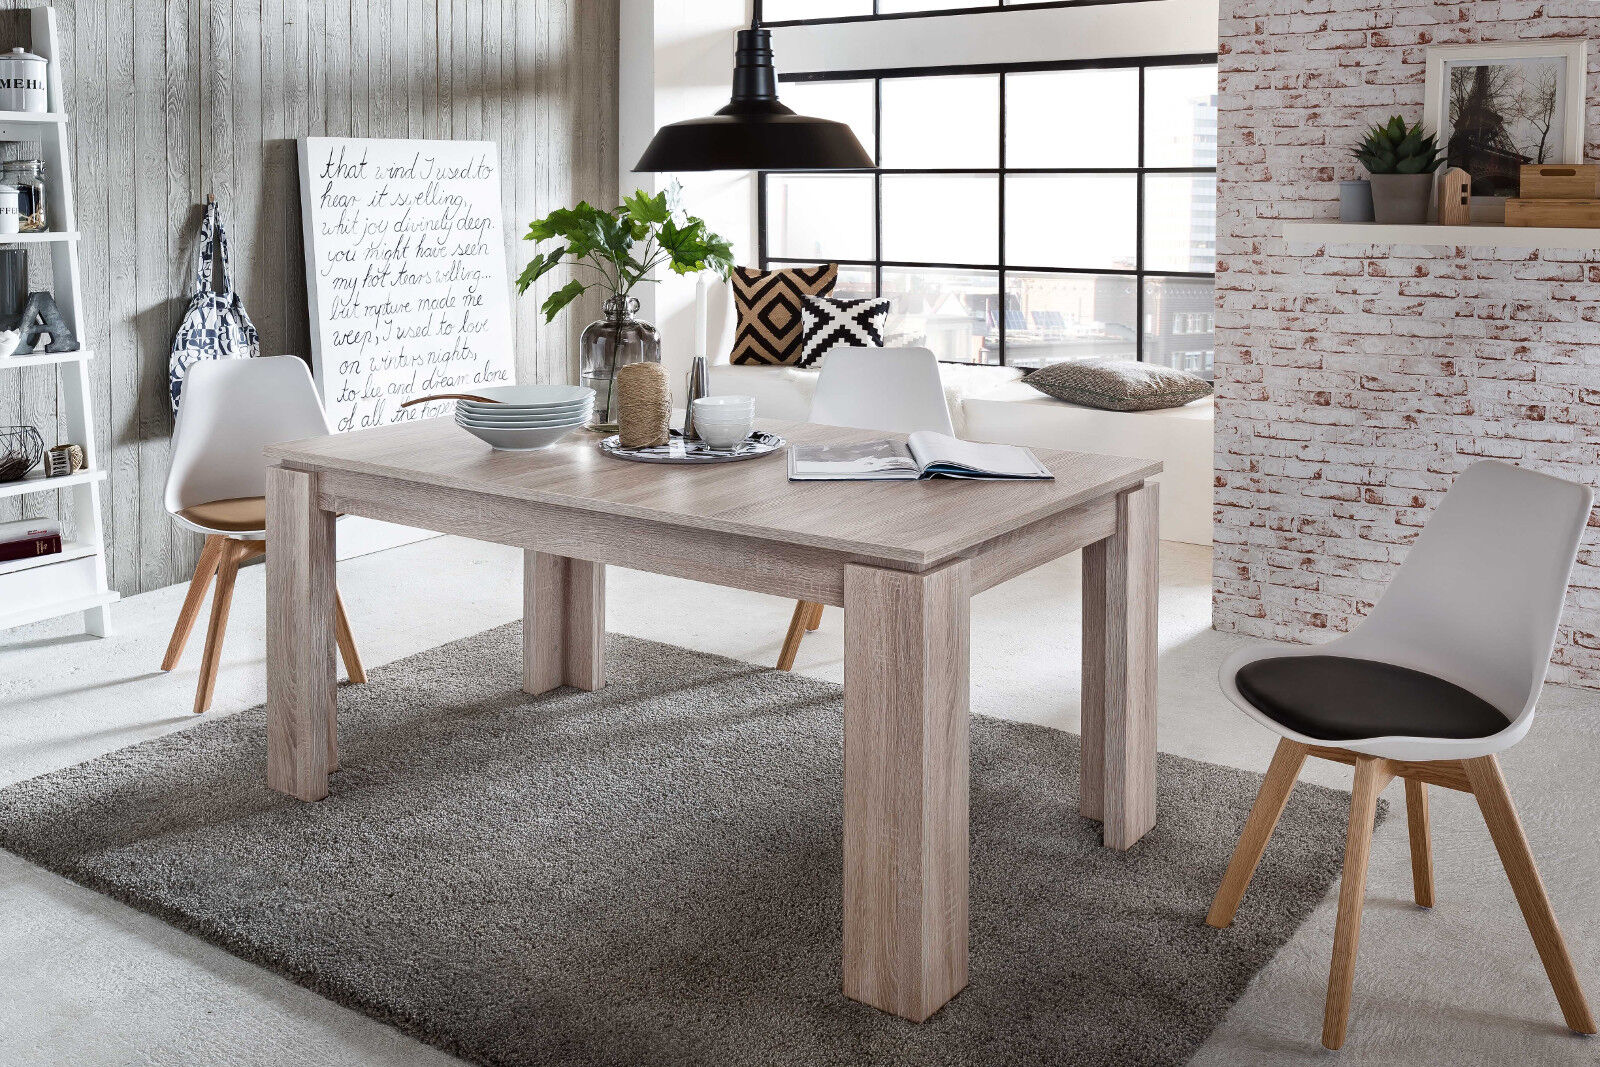 esszimmertisch holztisch ausziehbar sonoma eiche 160 200 cm k chentisch esstisch eur 214 99. Black Bedroom Furniture Sets. Home Design Ideas